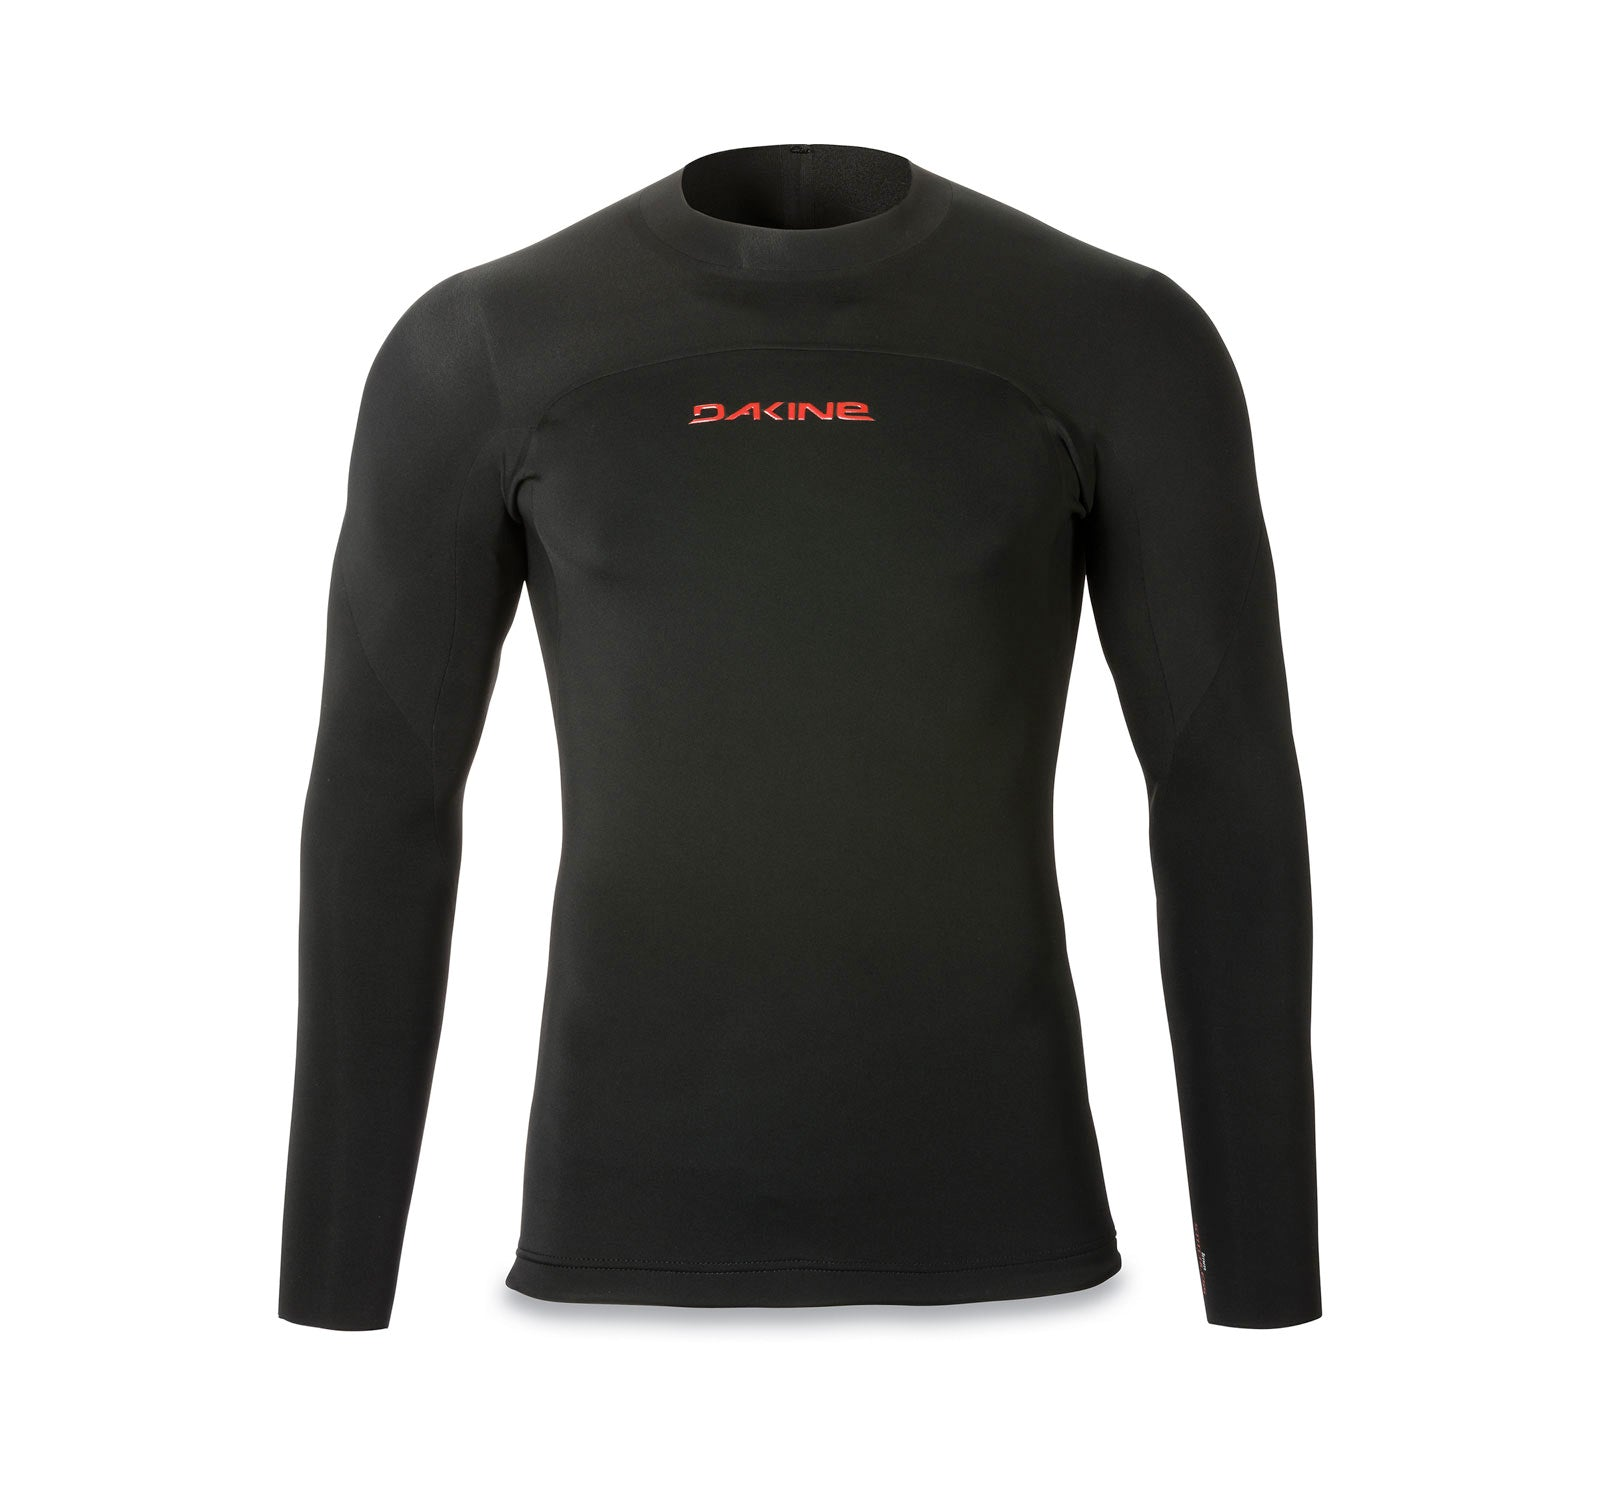 Dakine Neo Stitchfree 1mm Men's Wetsuit Jacket